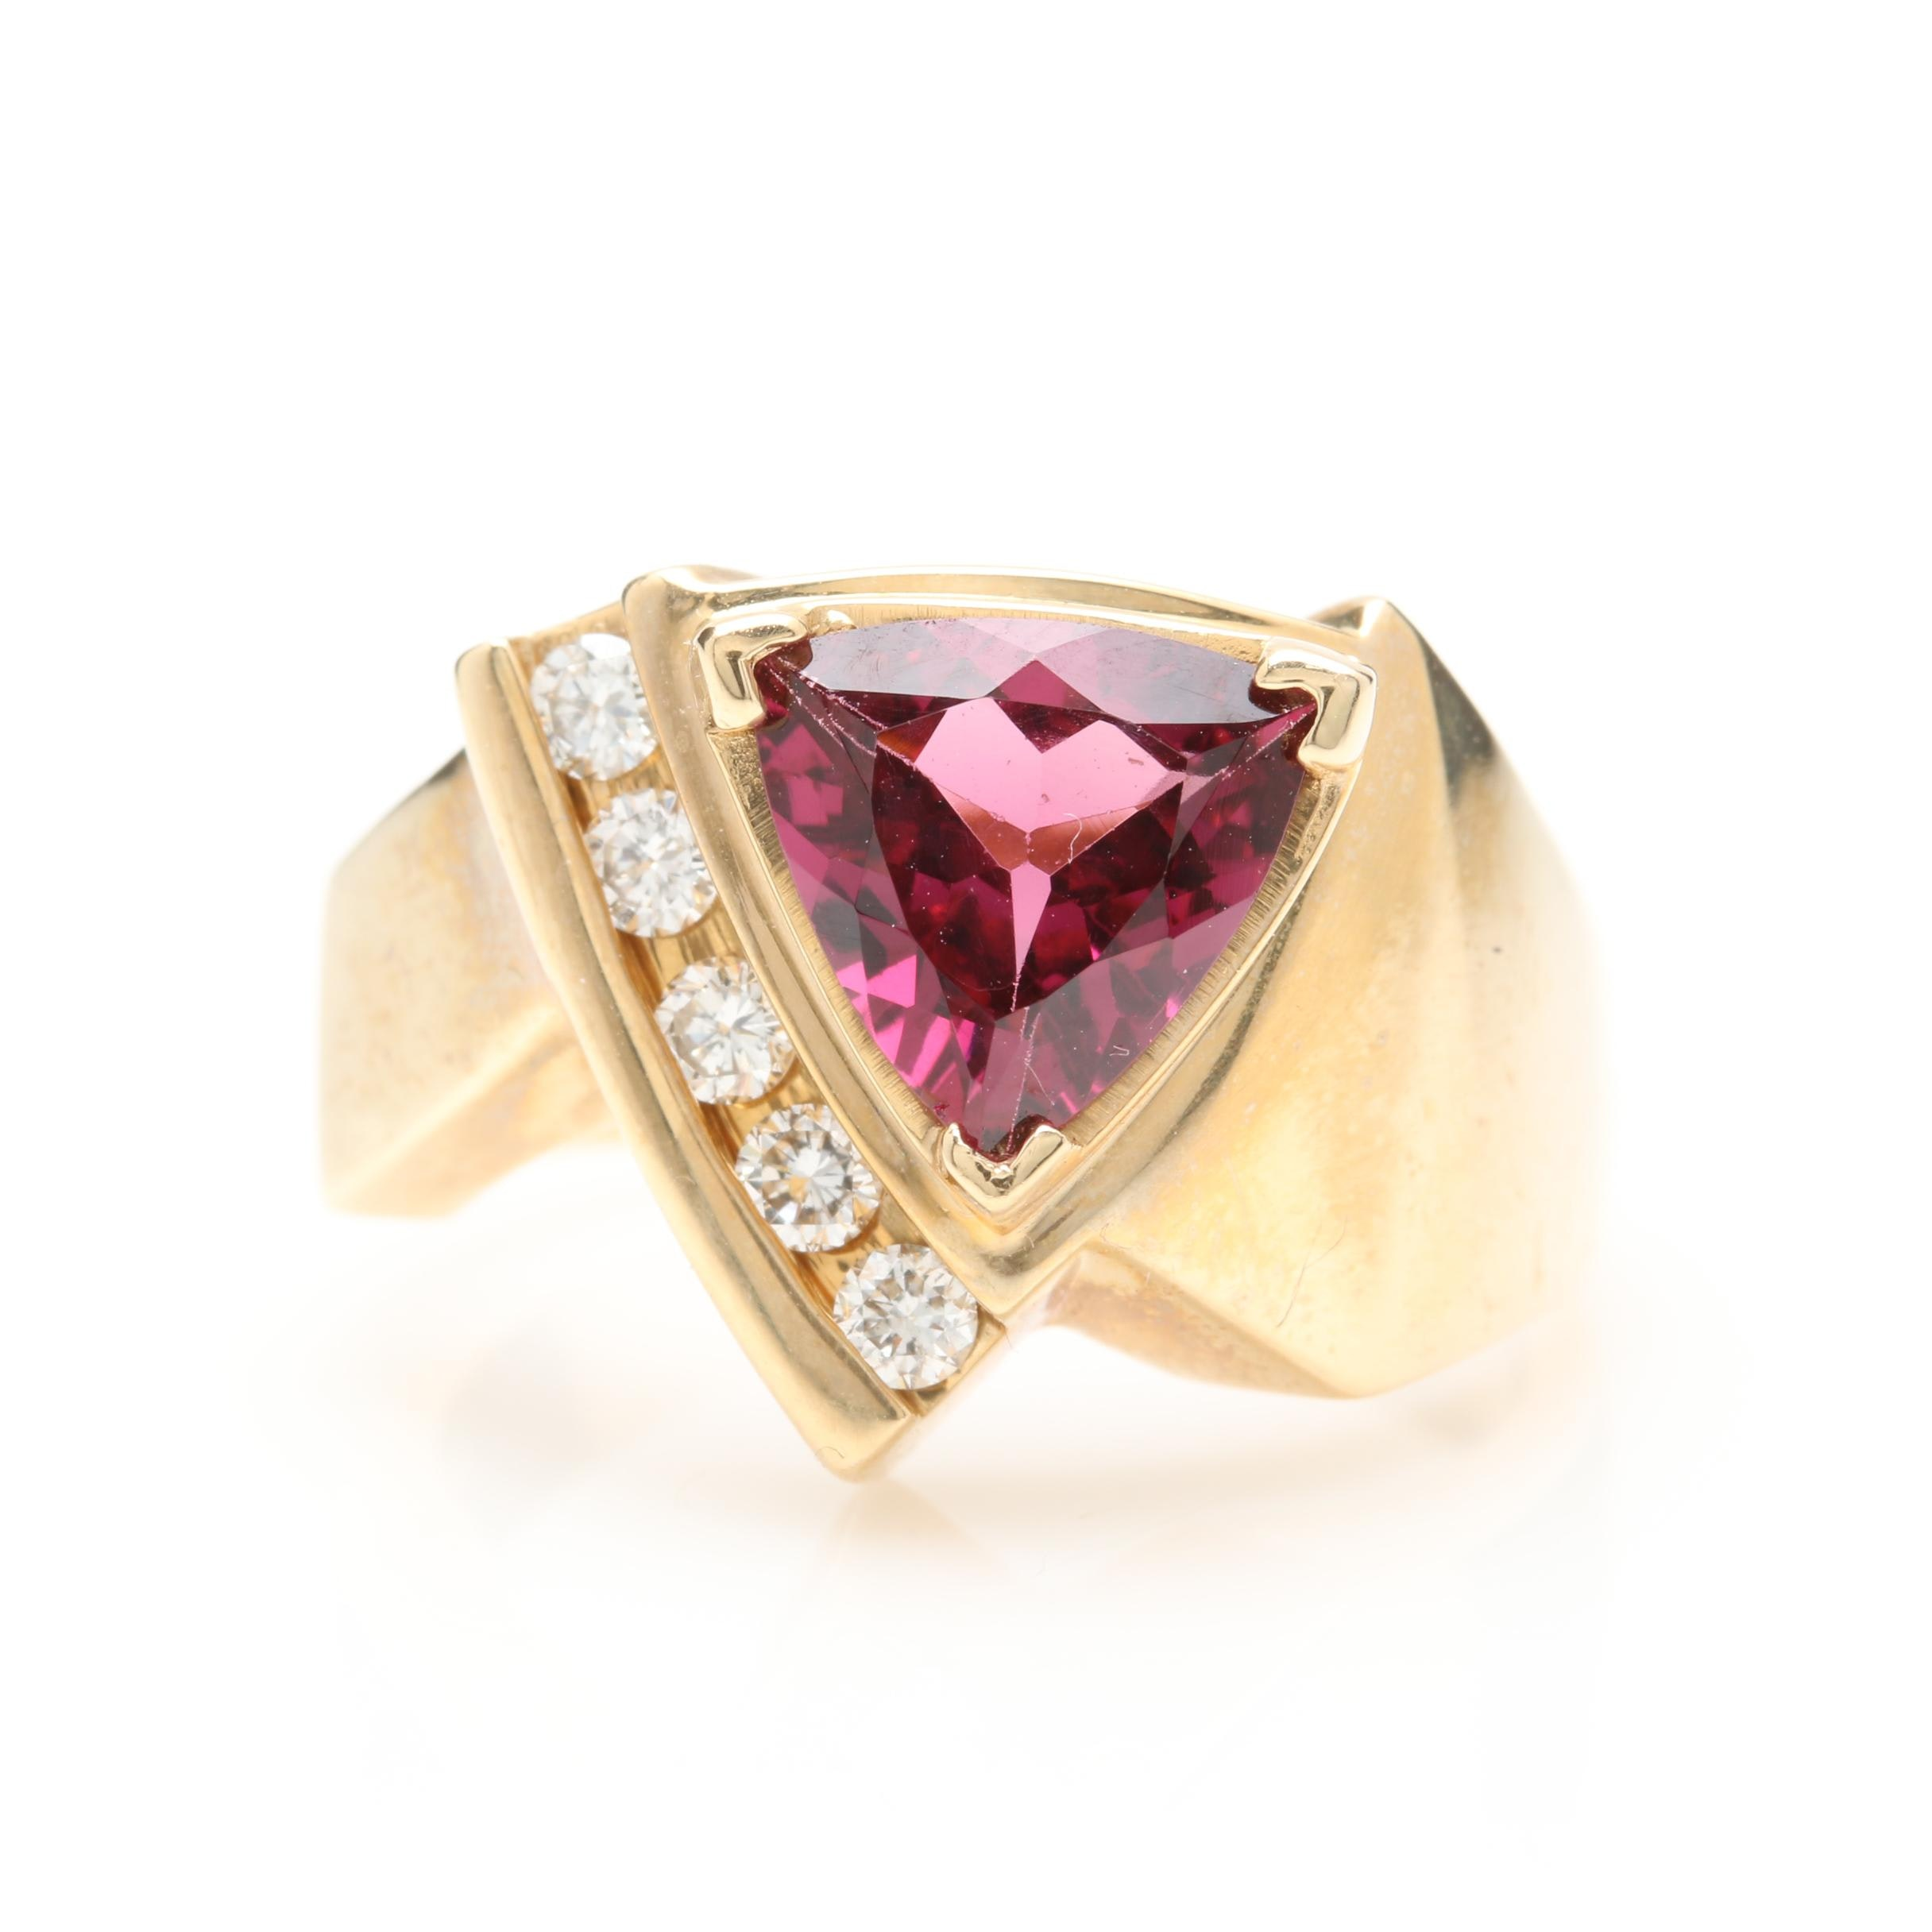 14K Yellow Gold 3.09 CT Rhodolite Garnet and Diamond Ring